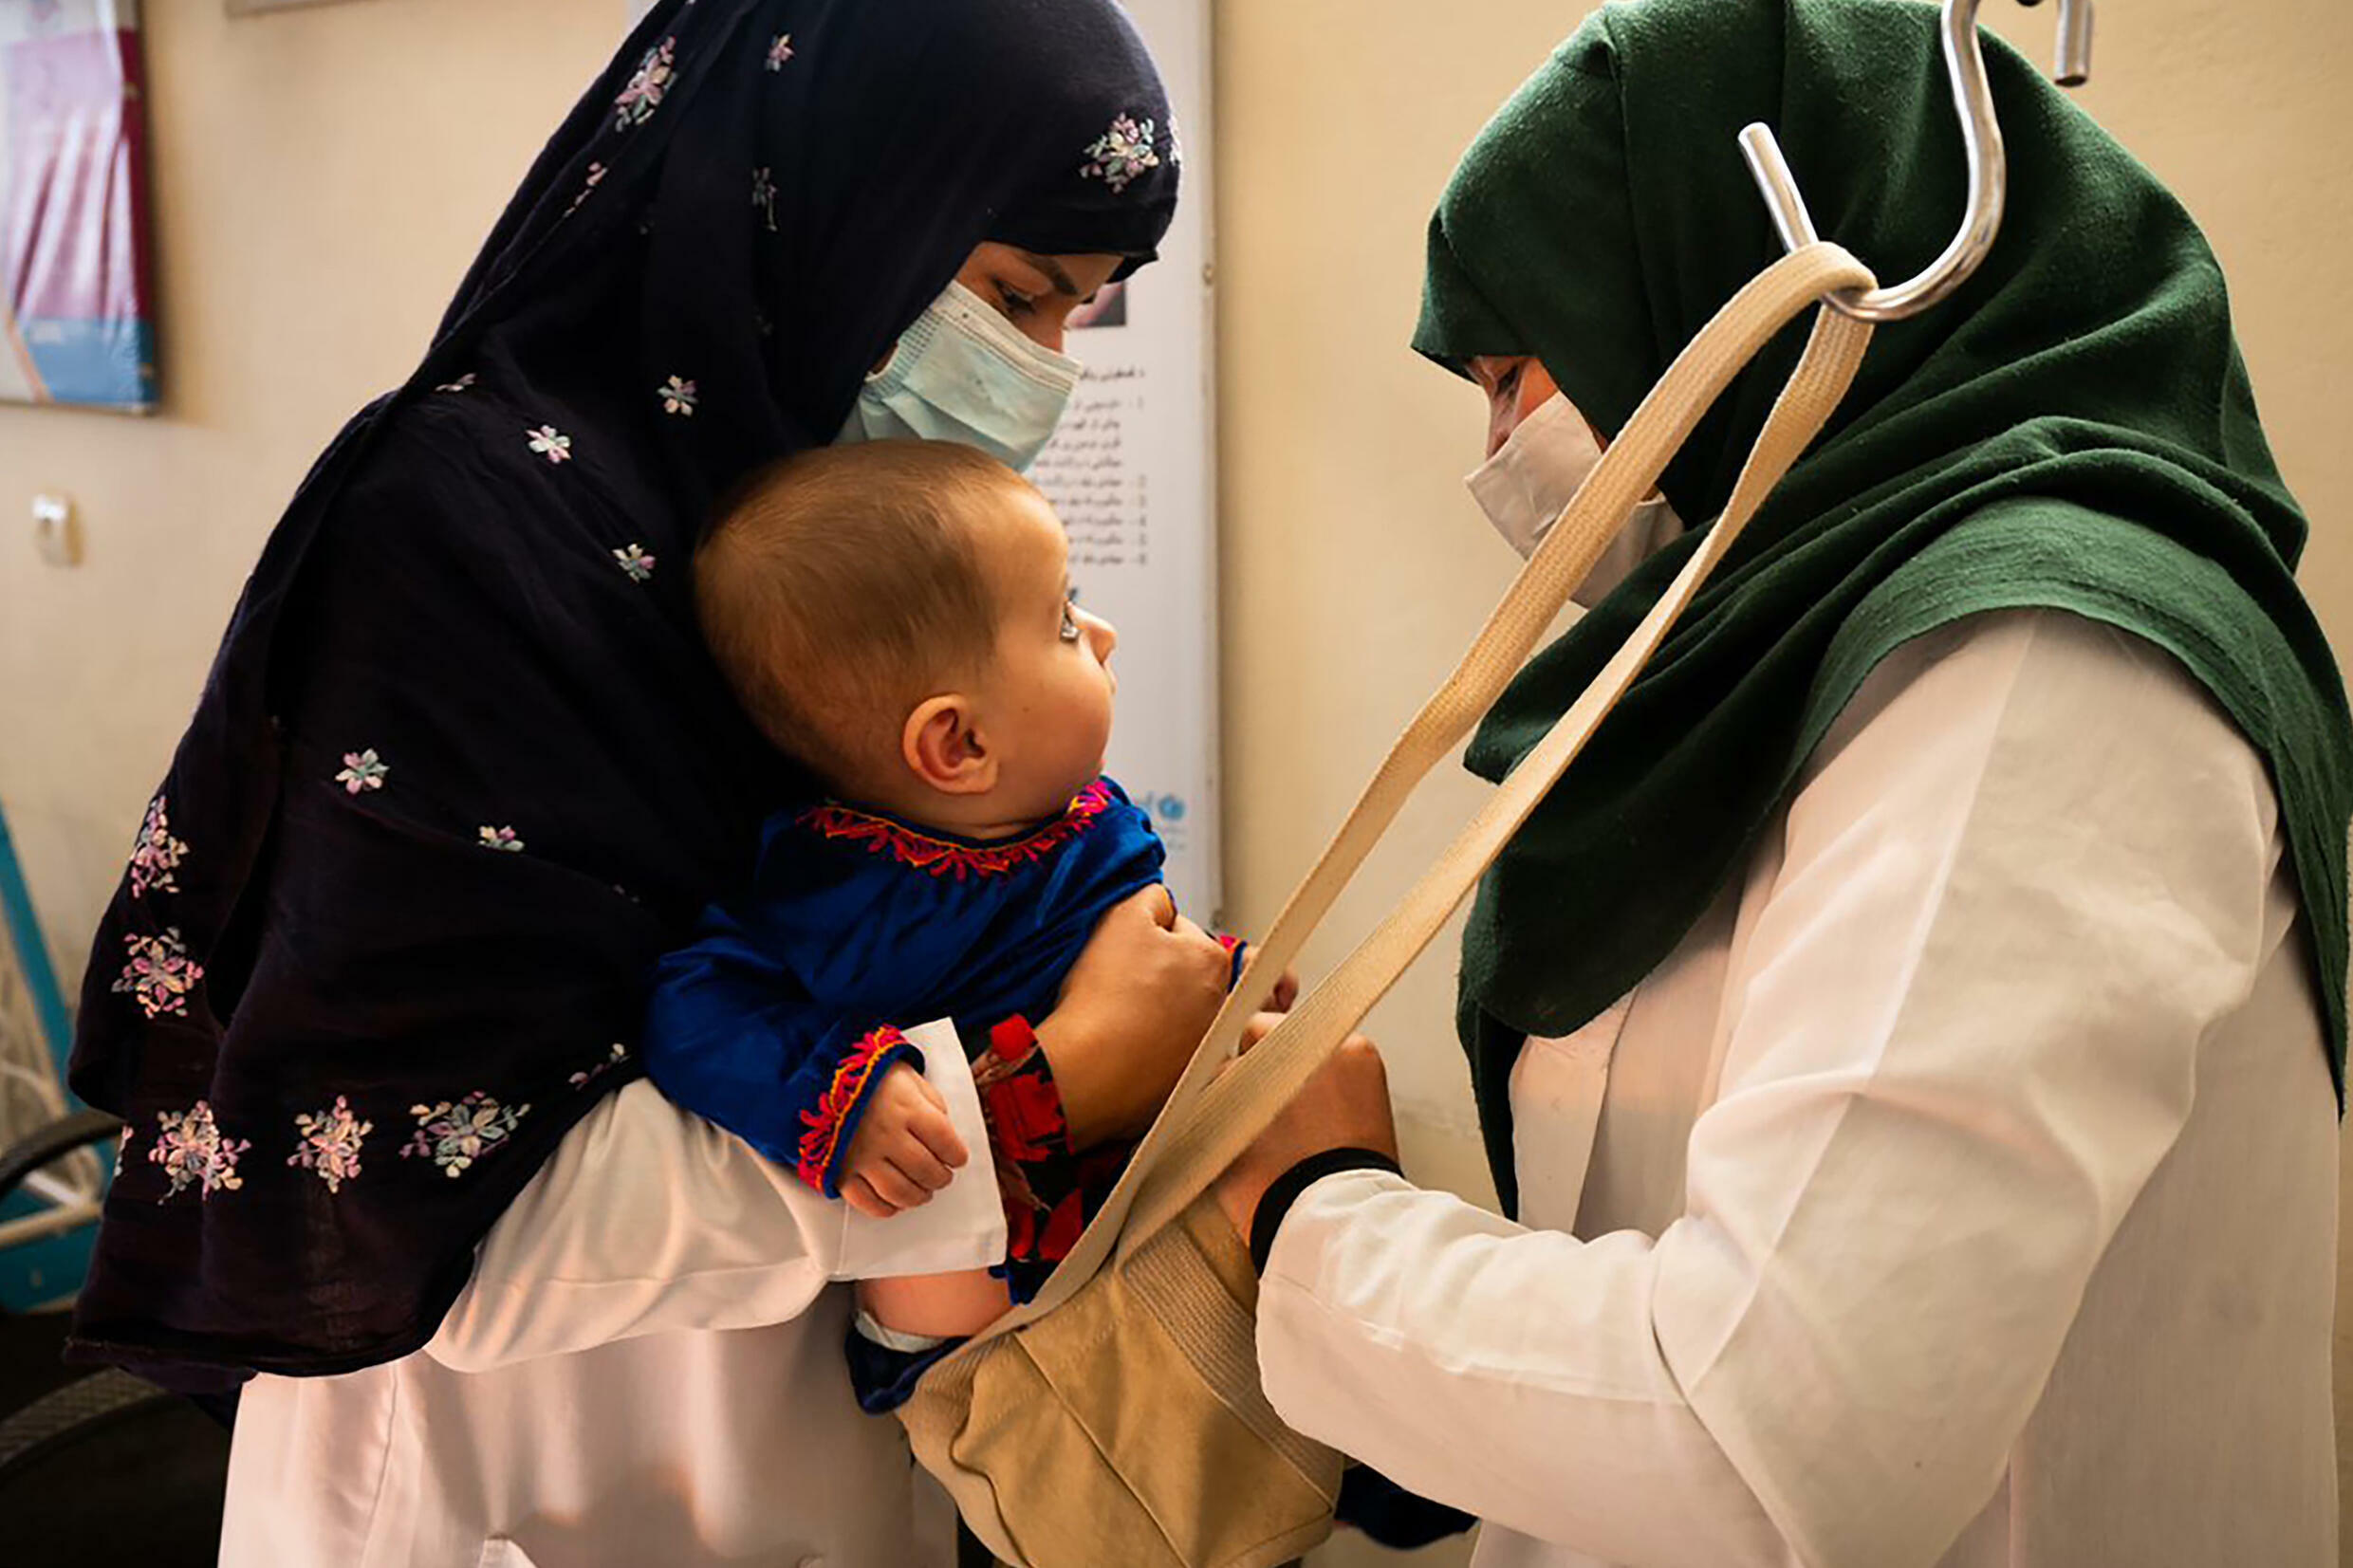 A midwife and a nutrition counsellor weigh a baby at the Tangi Saidan clinic